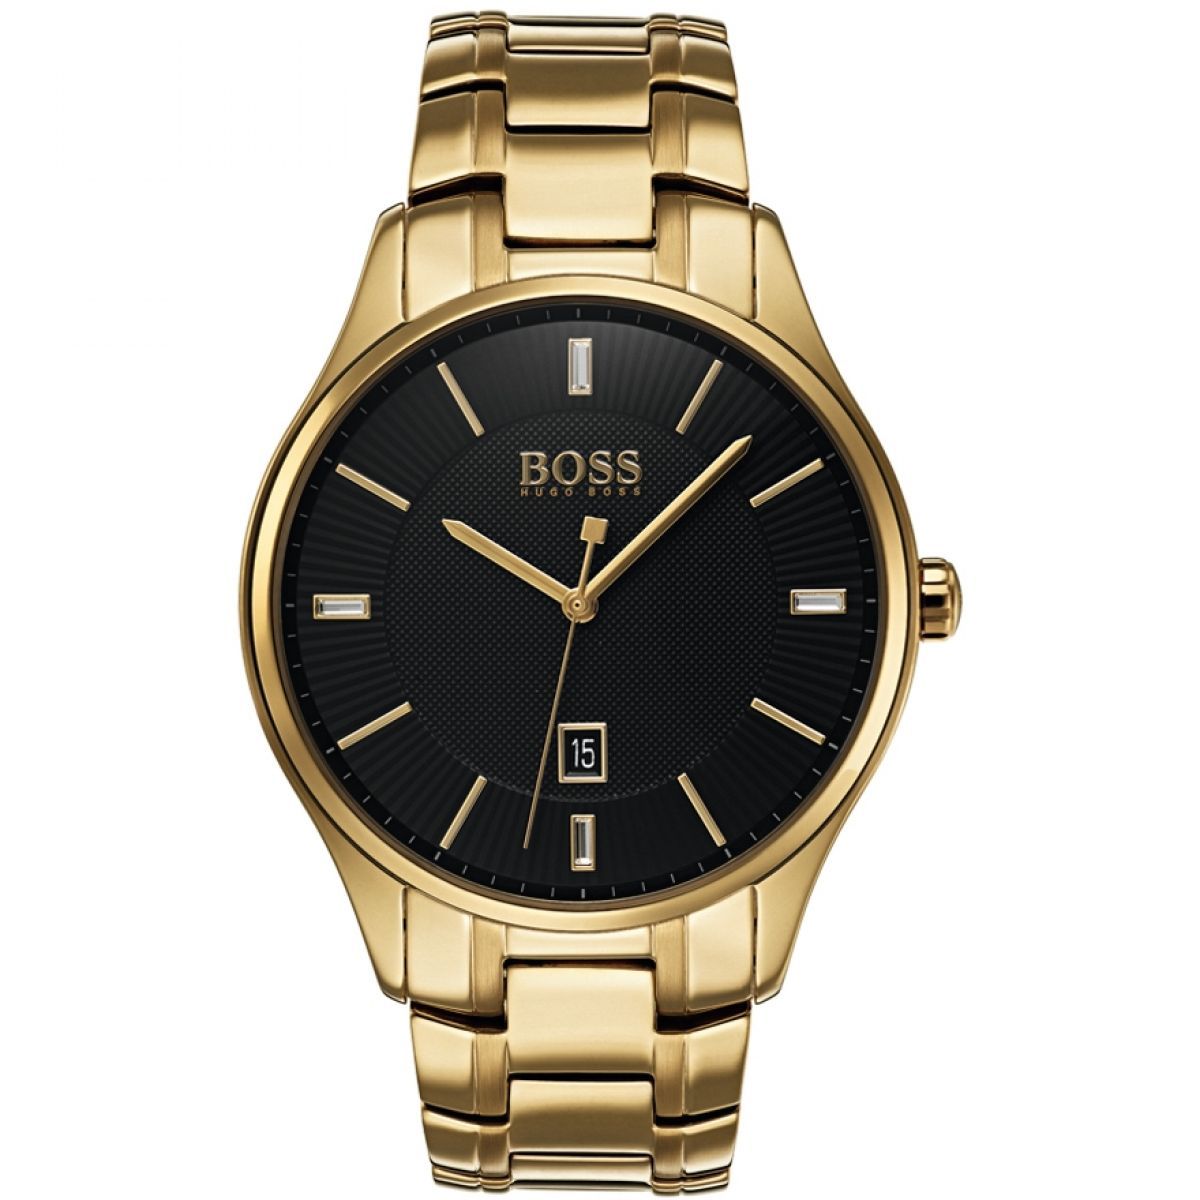 Gents hugo boss governor watch 1513521 for Hugo boss watches